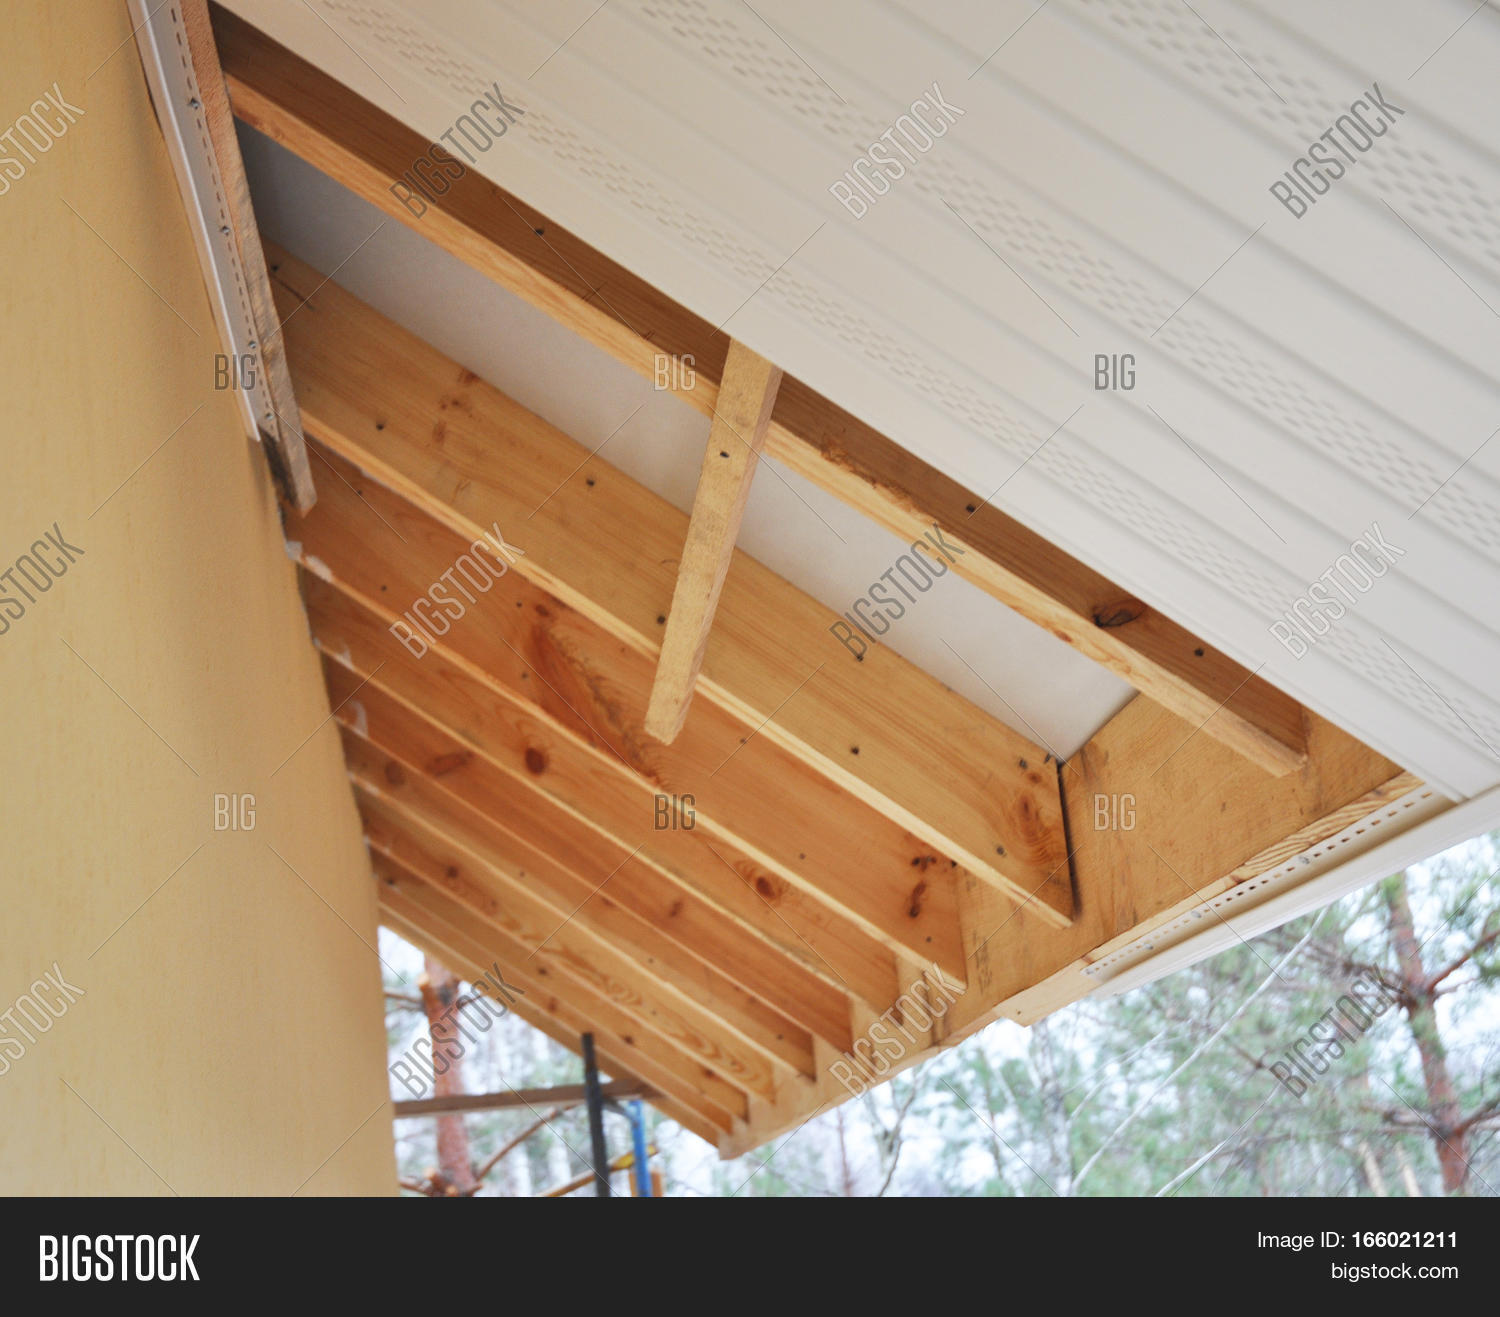 close on roofing construction image photo bigstock